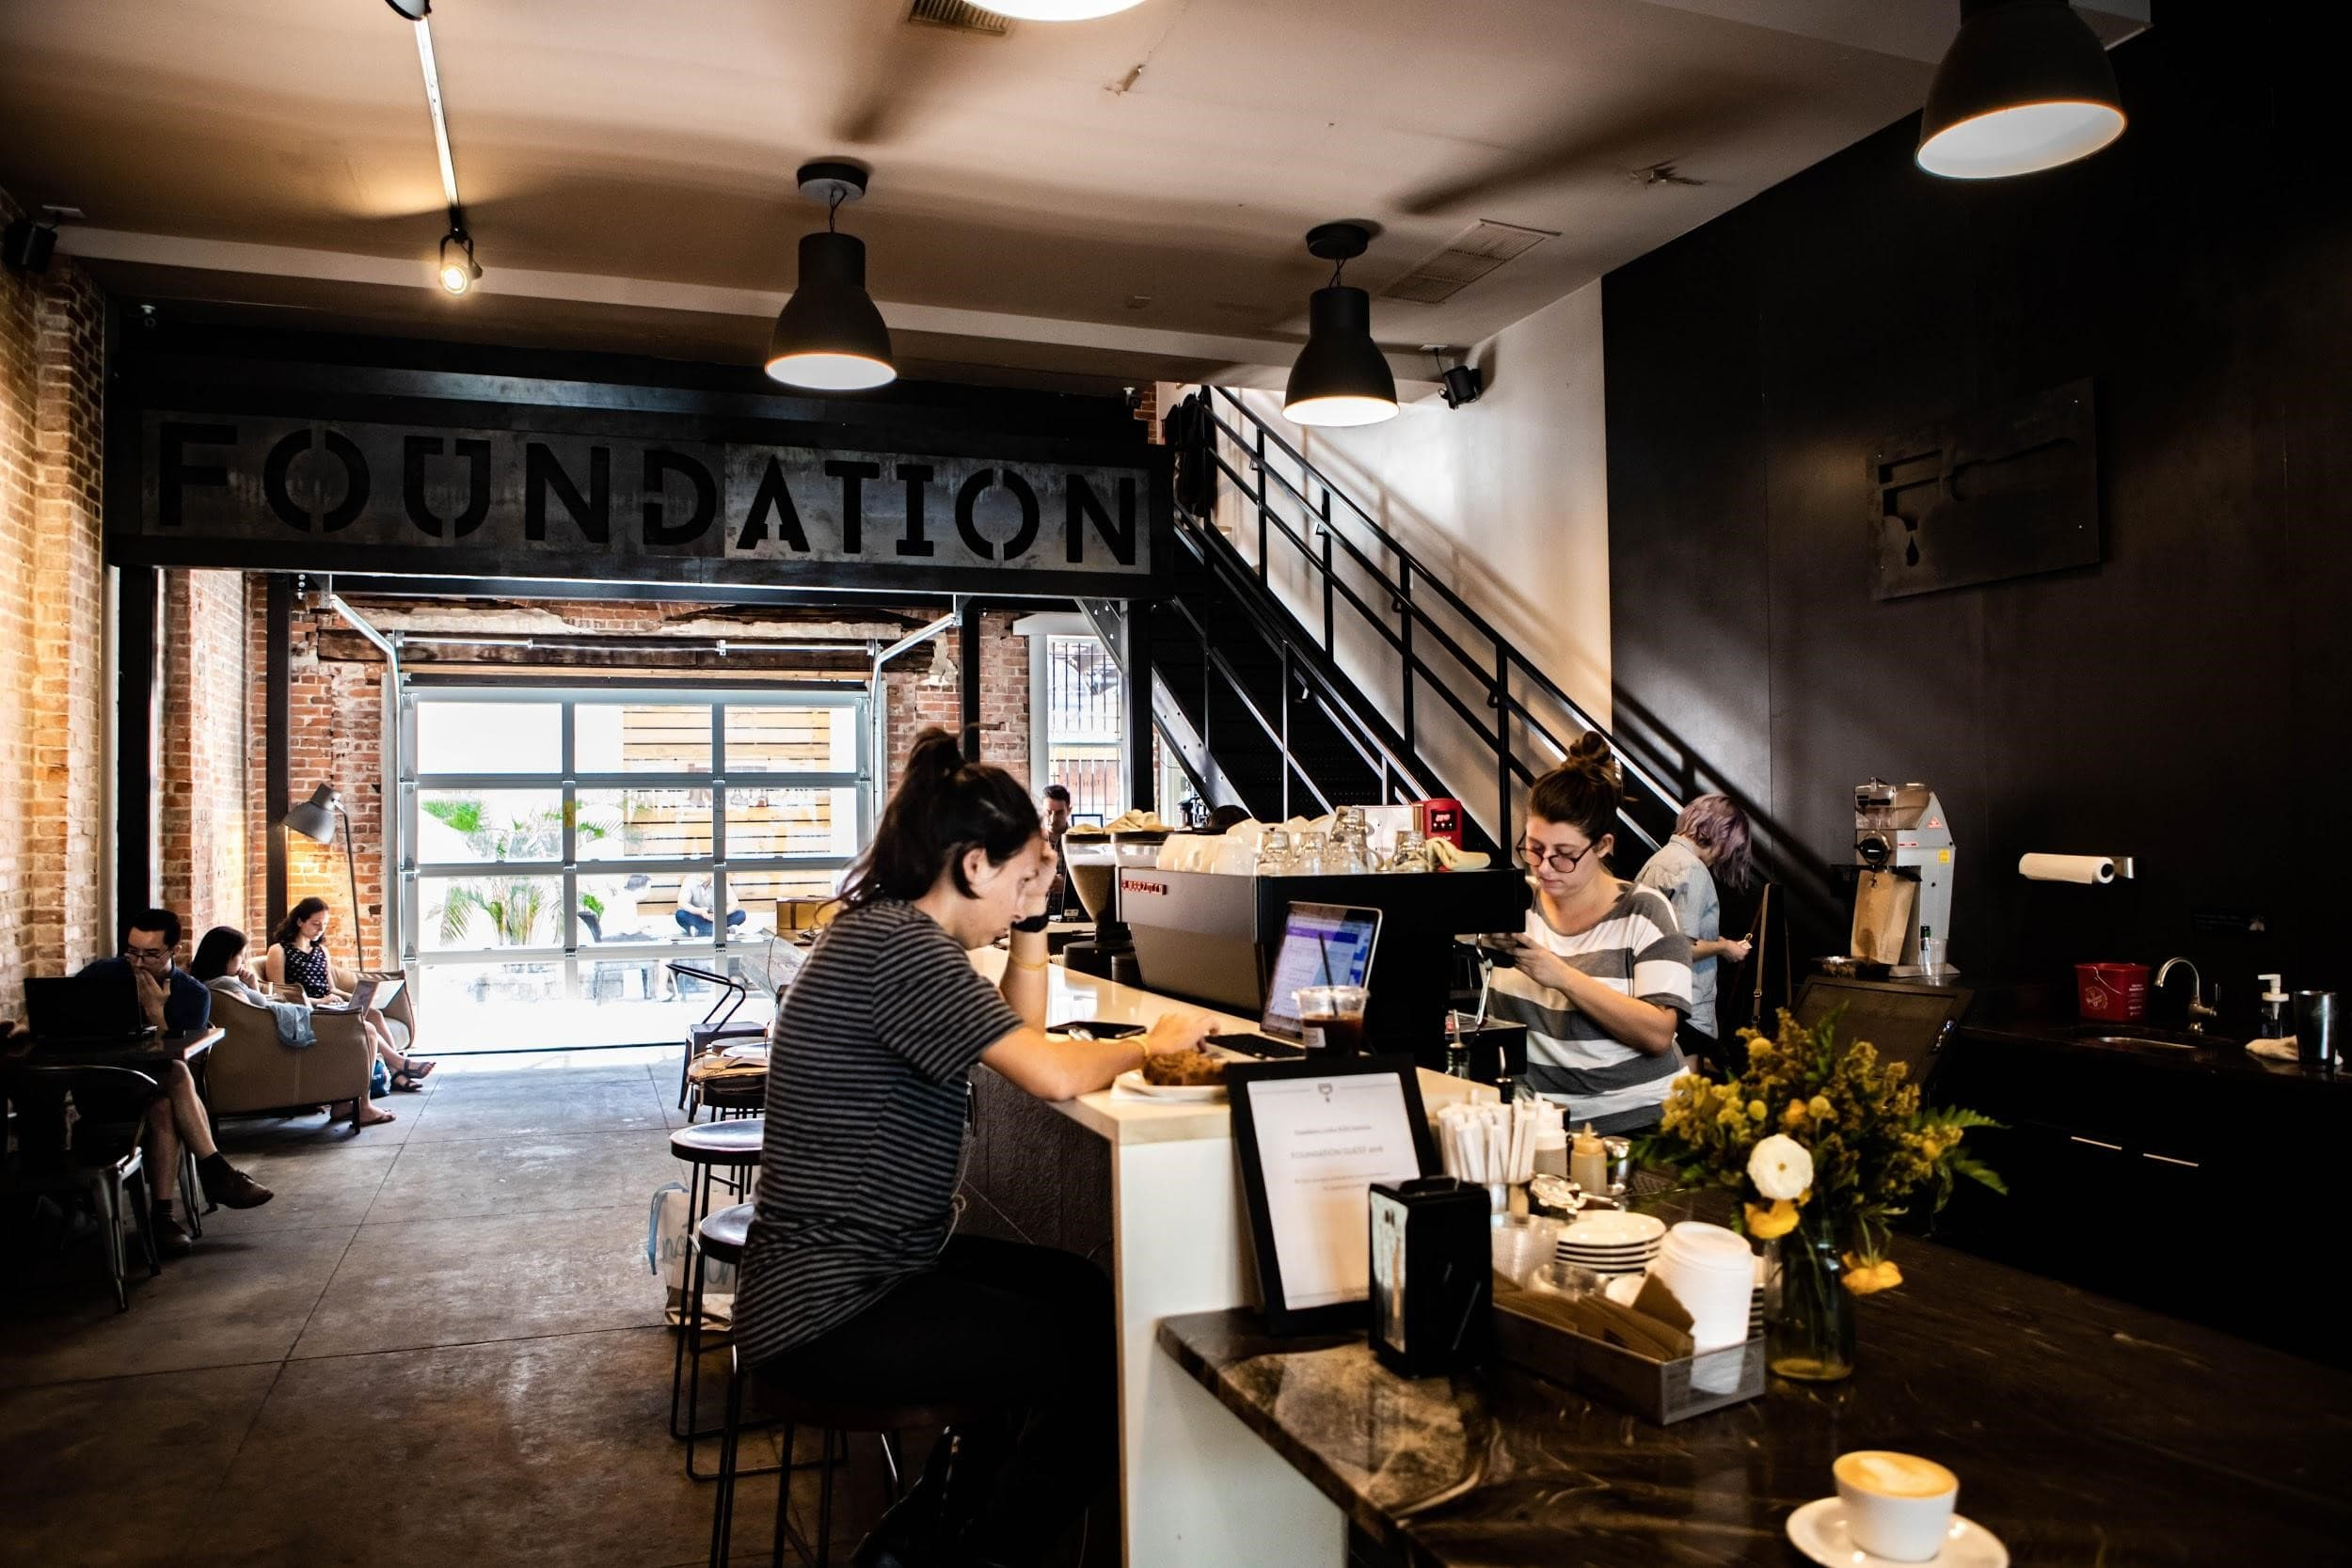 foundation coffee co in tampa florida